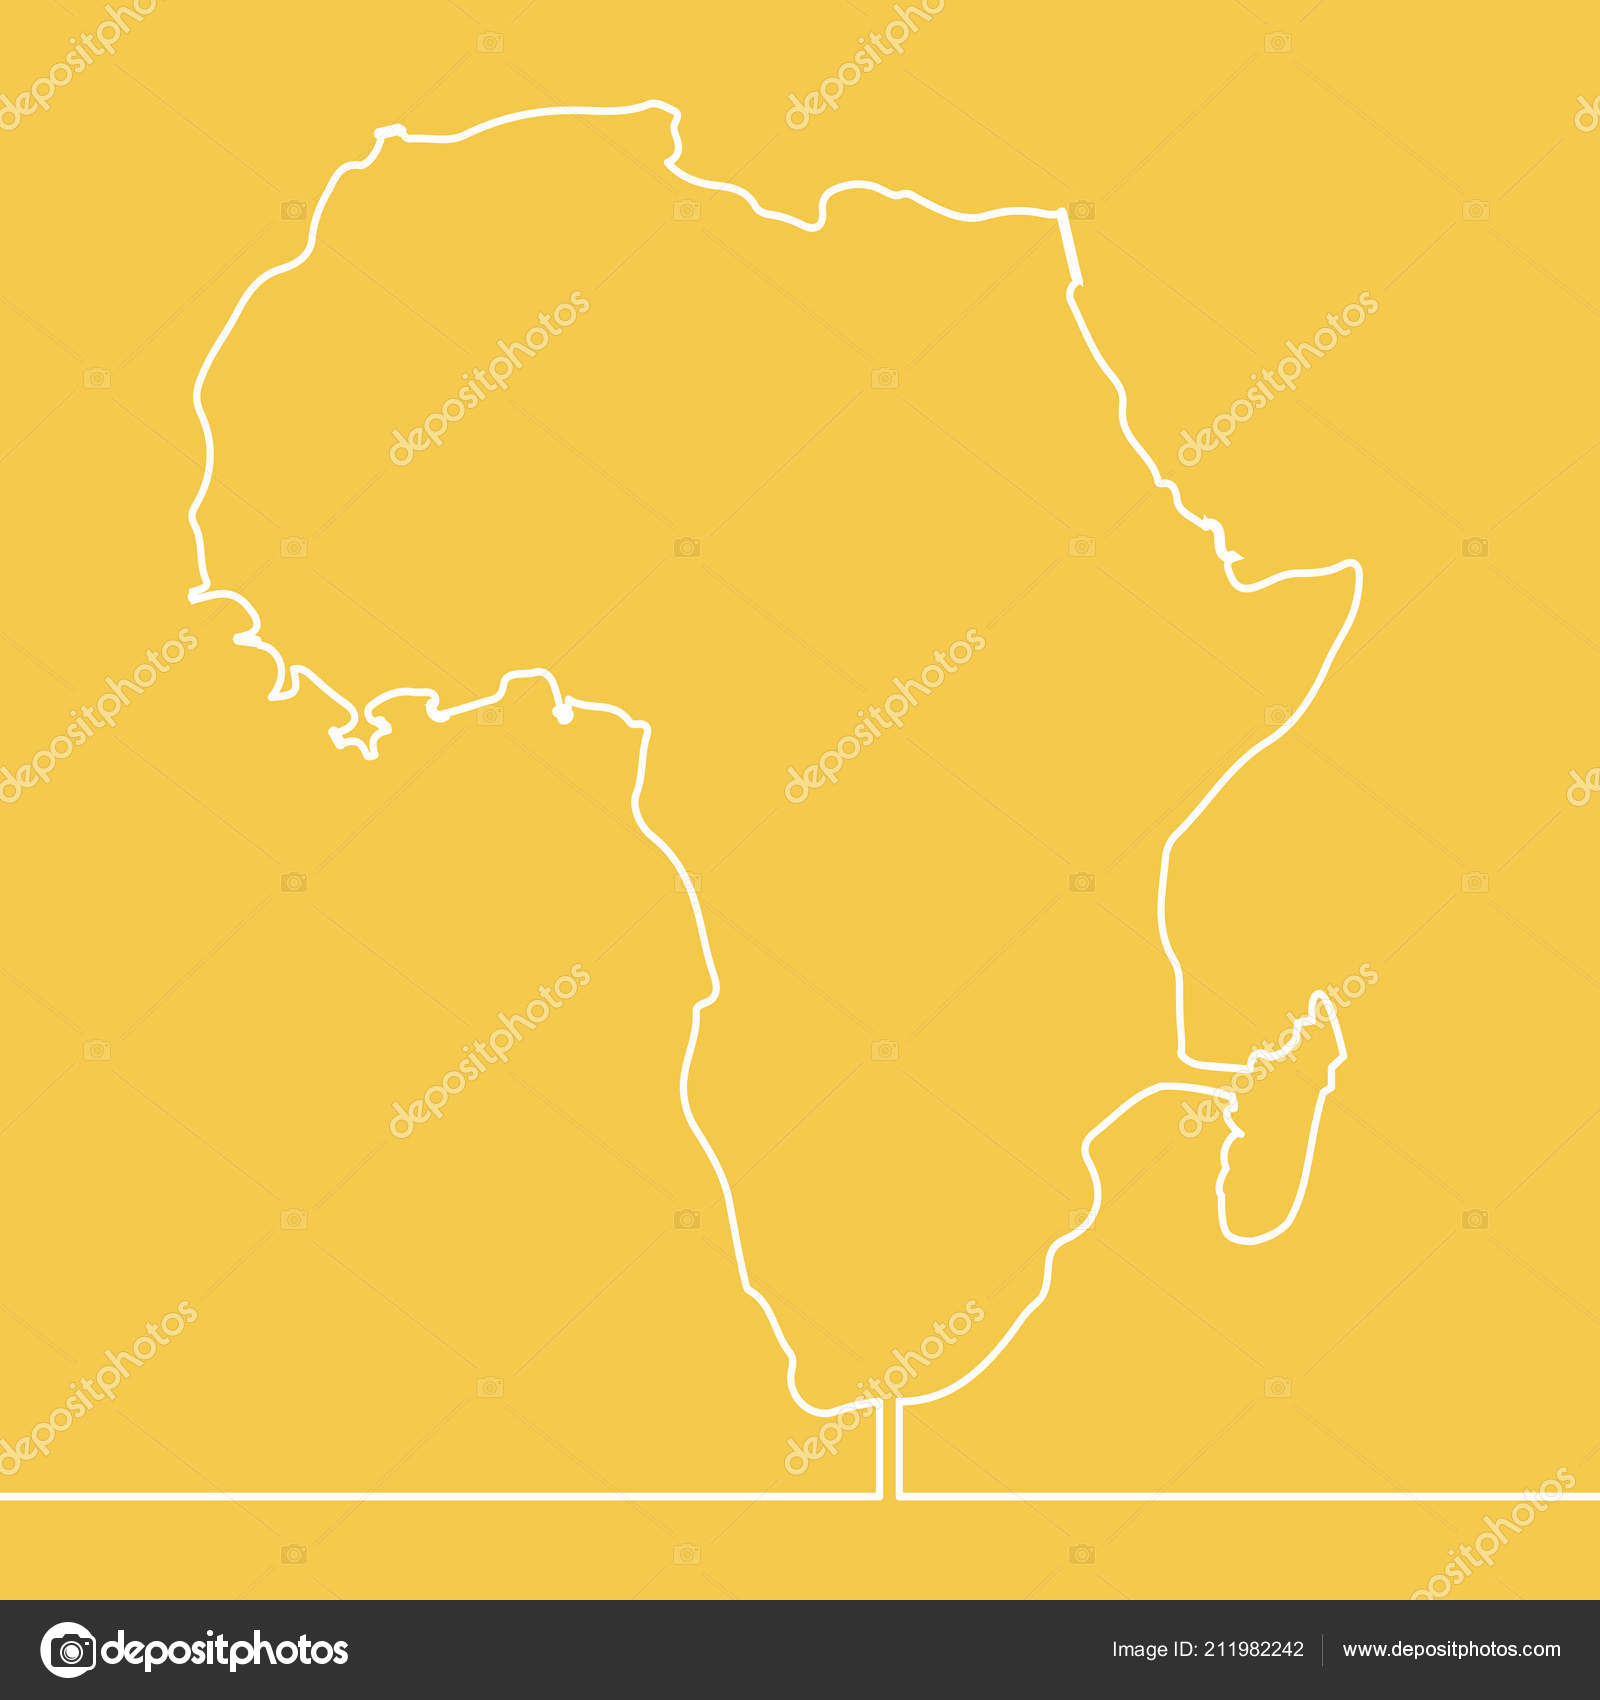 Map Of Africa Drawing.Continuous Line Drawing Map Africa Vector Illustration Stock